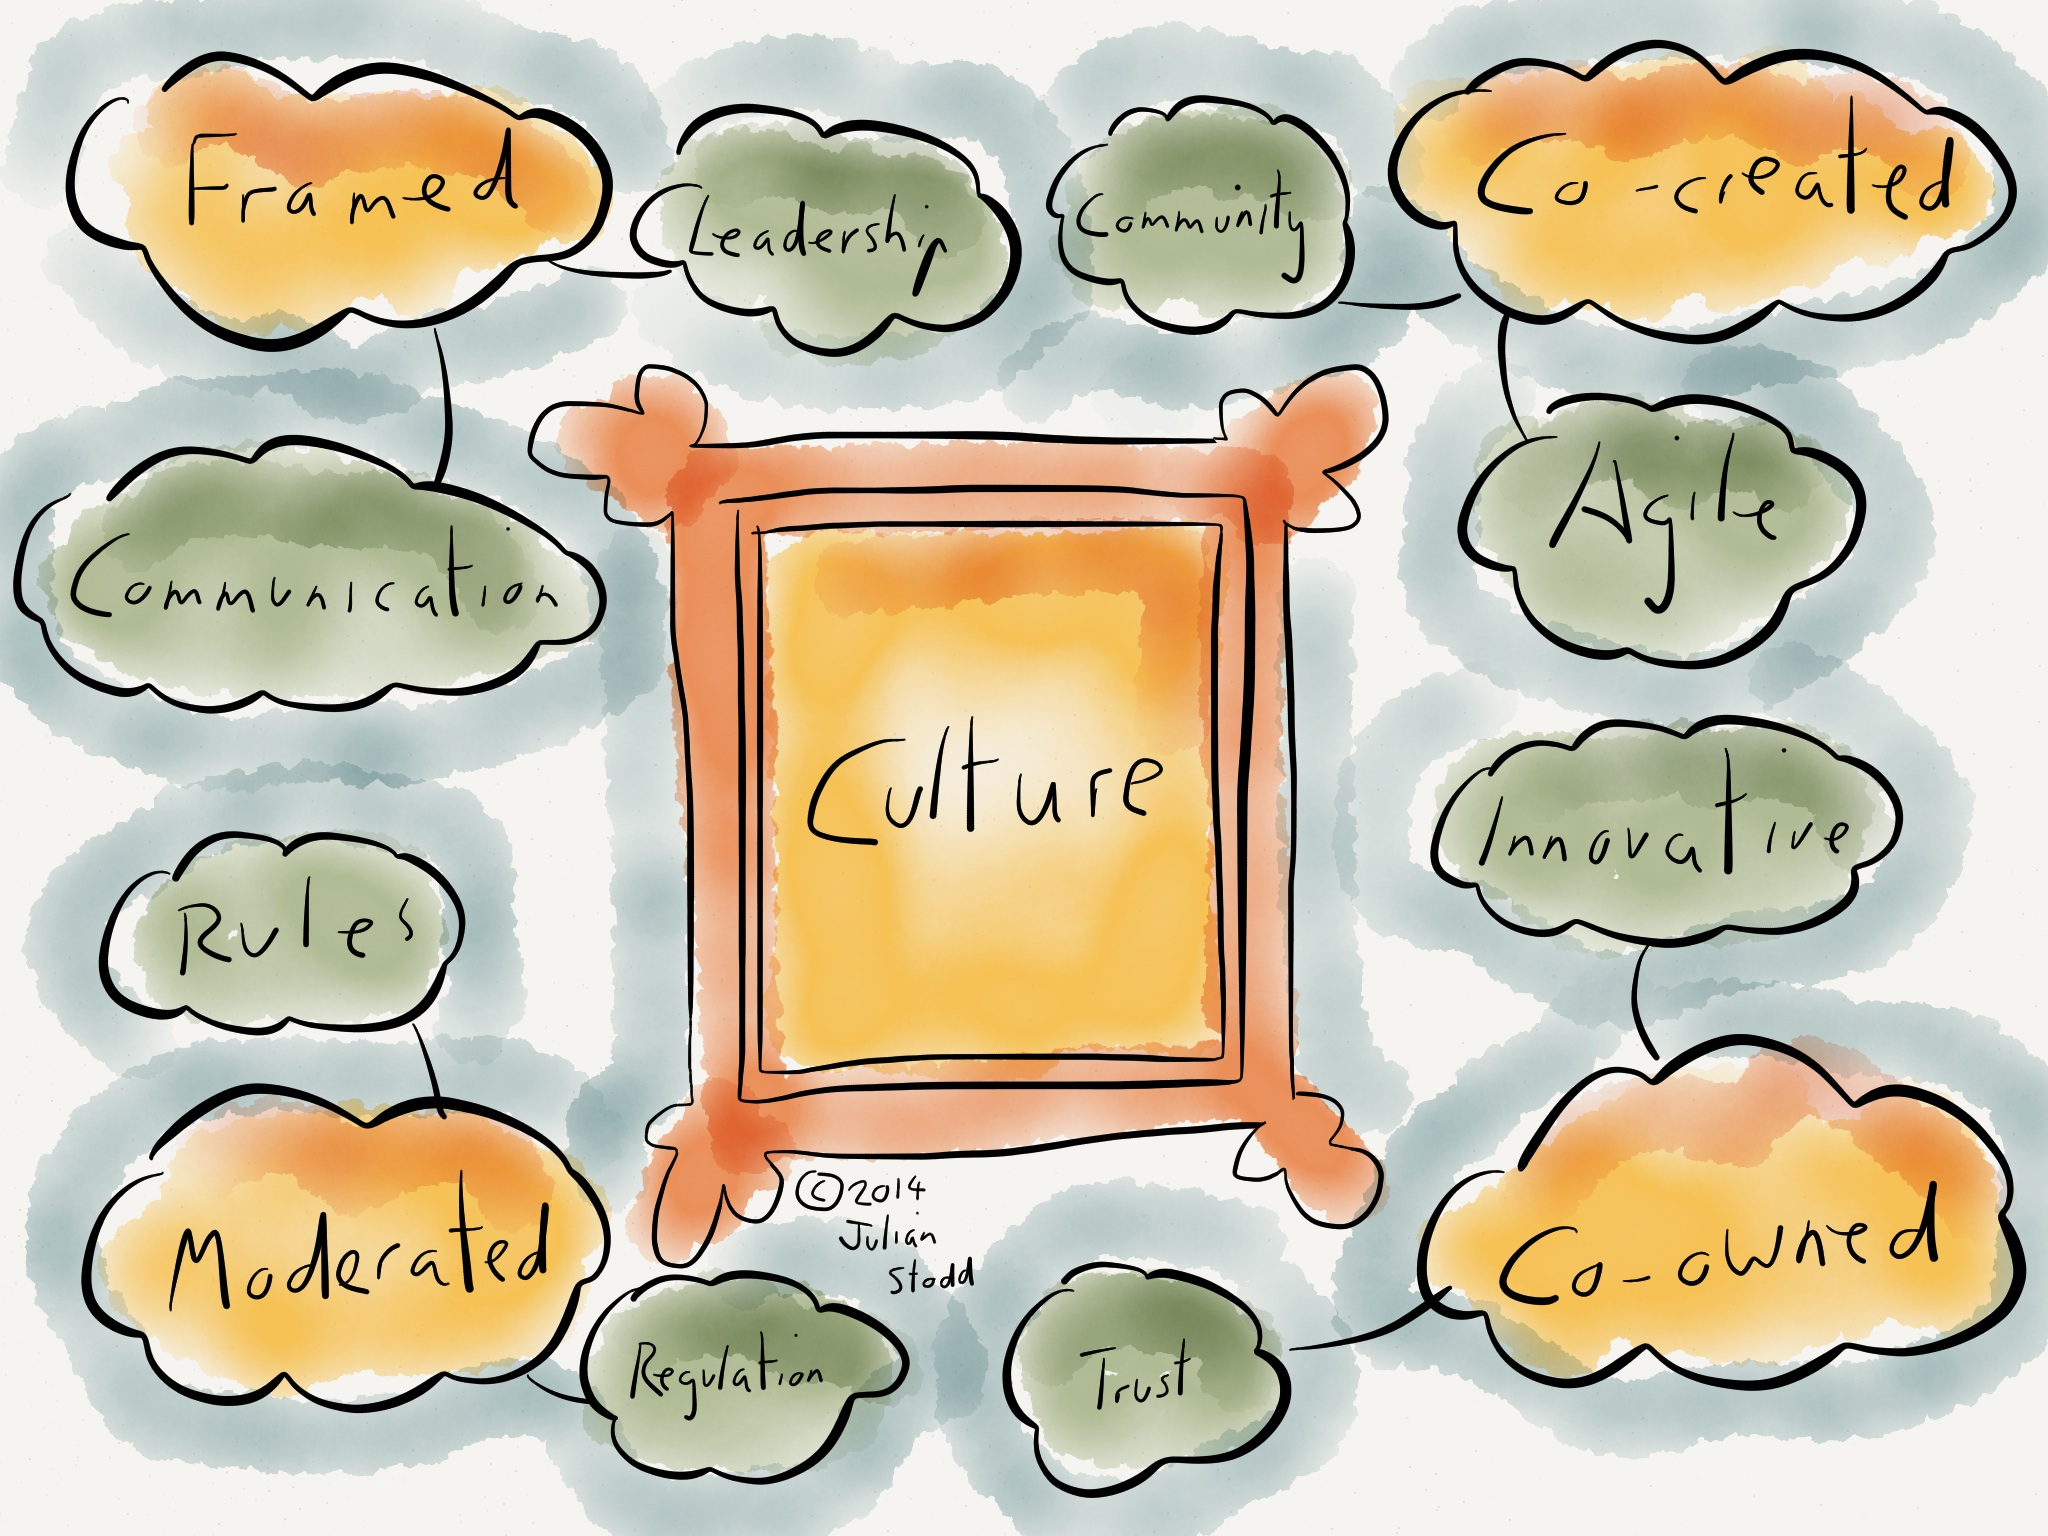 3.1. What Is Culture?